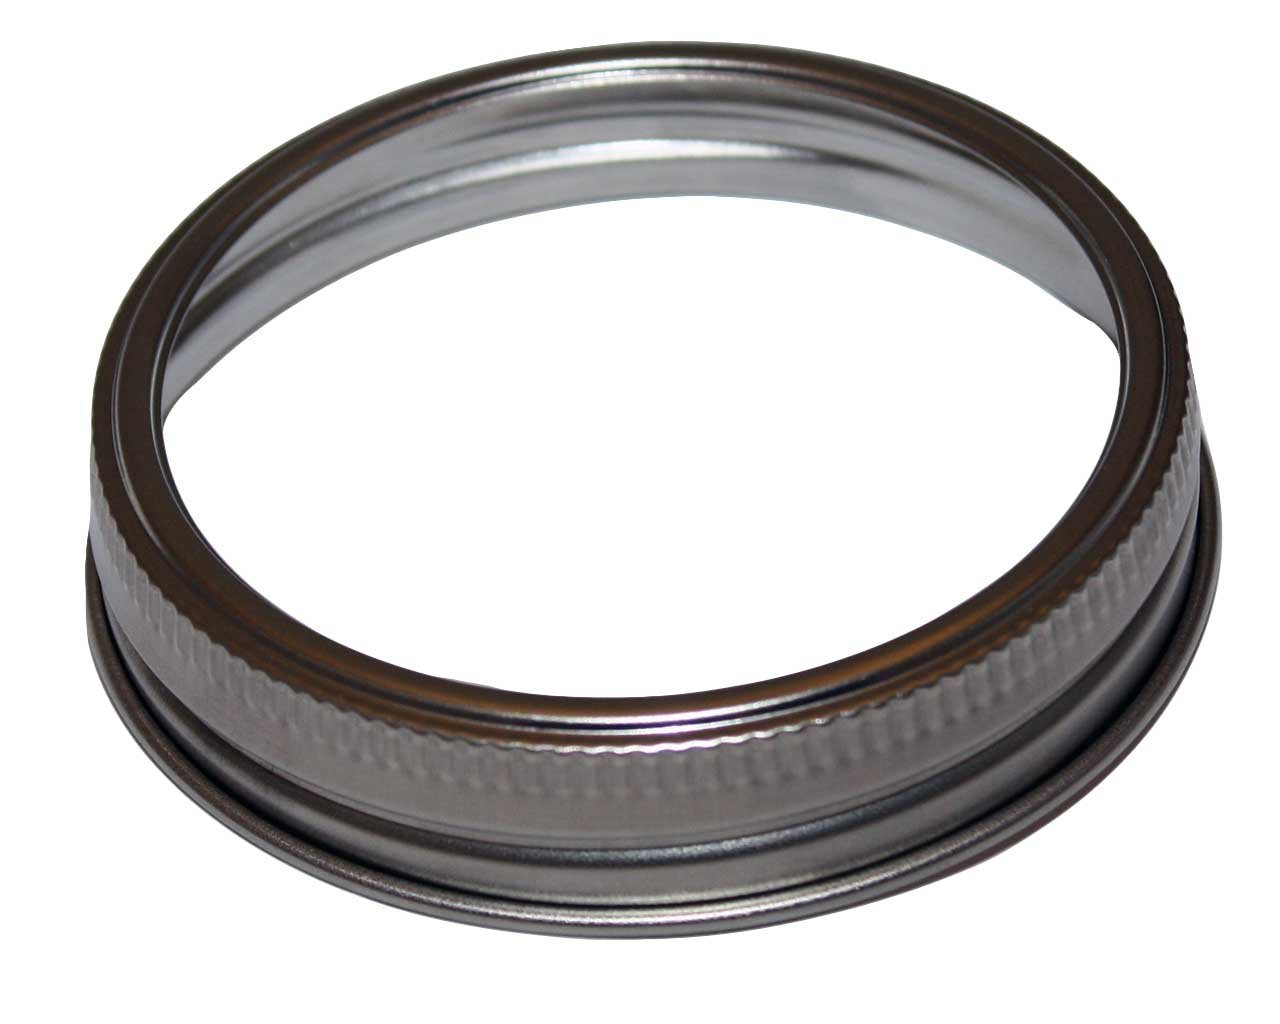 Stainless Steel Rust Proof Bands / Rings for Mason, Ball, Canning Jars (5 Pack, Wide Mouth)